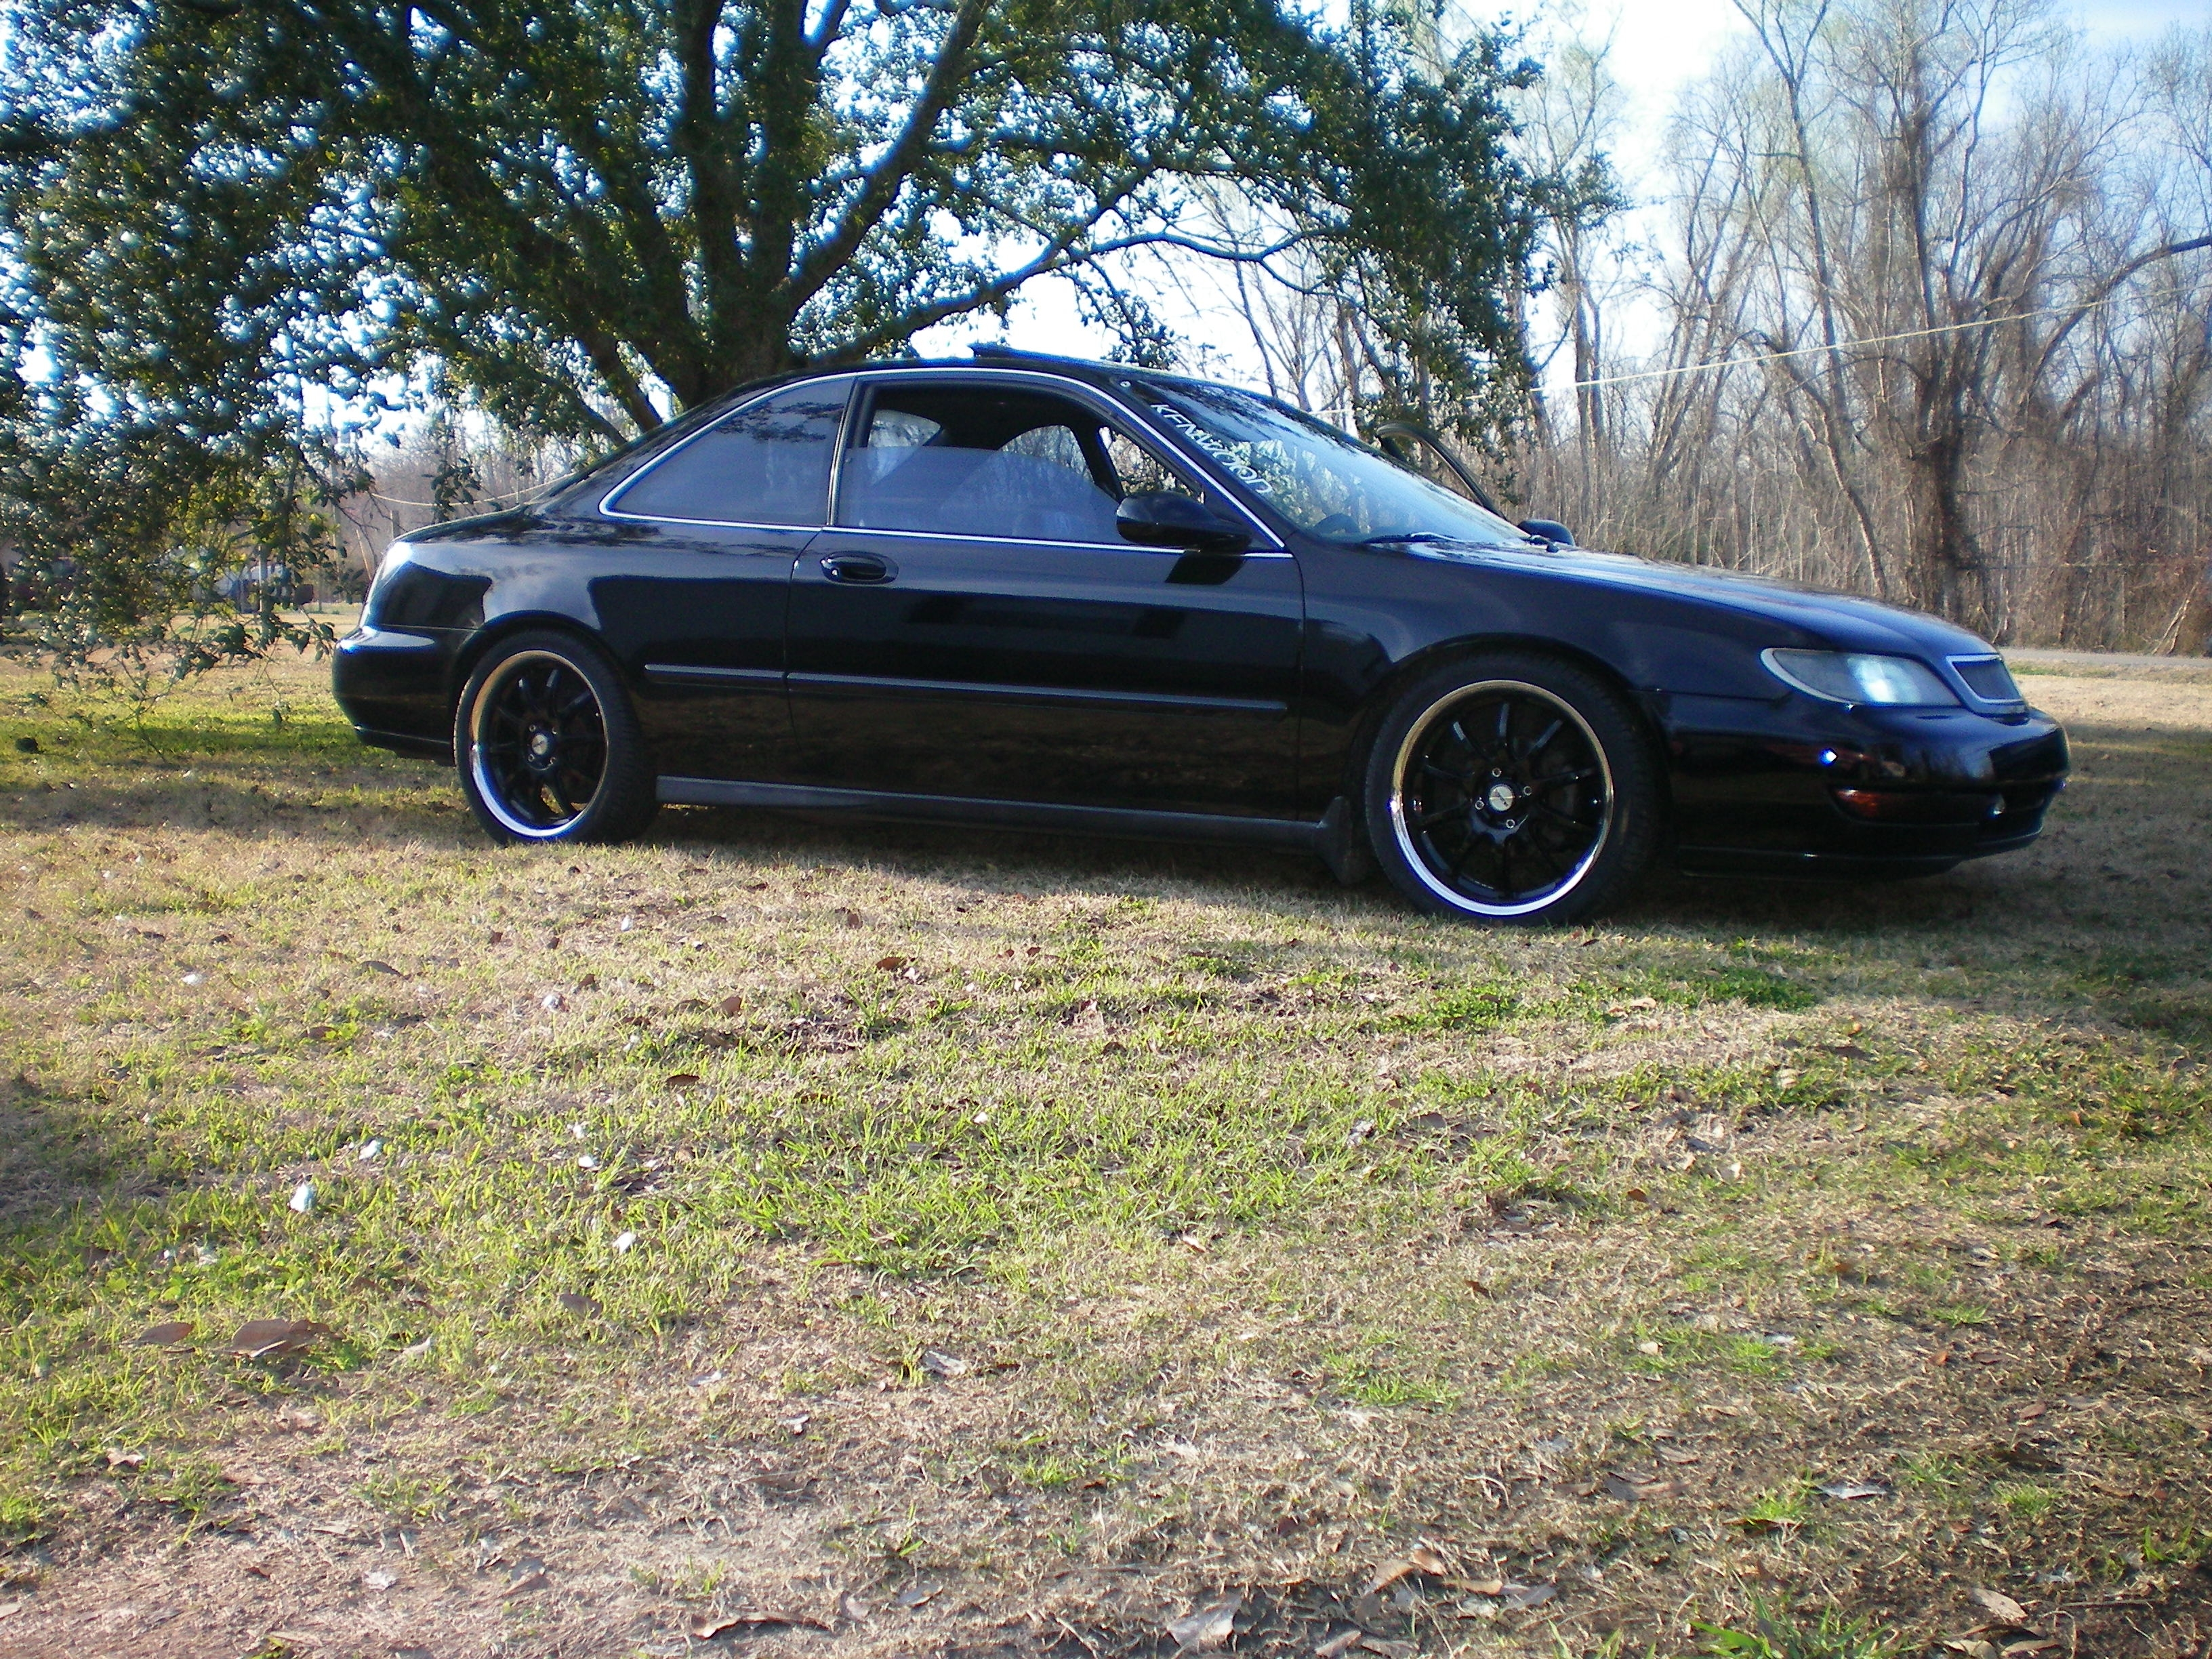 imstillnothappy's 1997 Acura CL